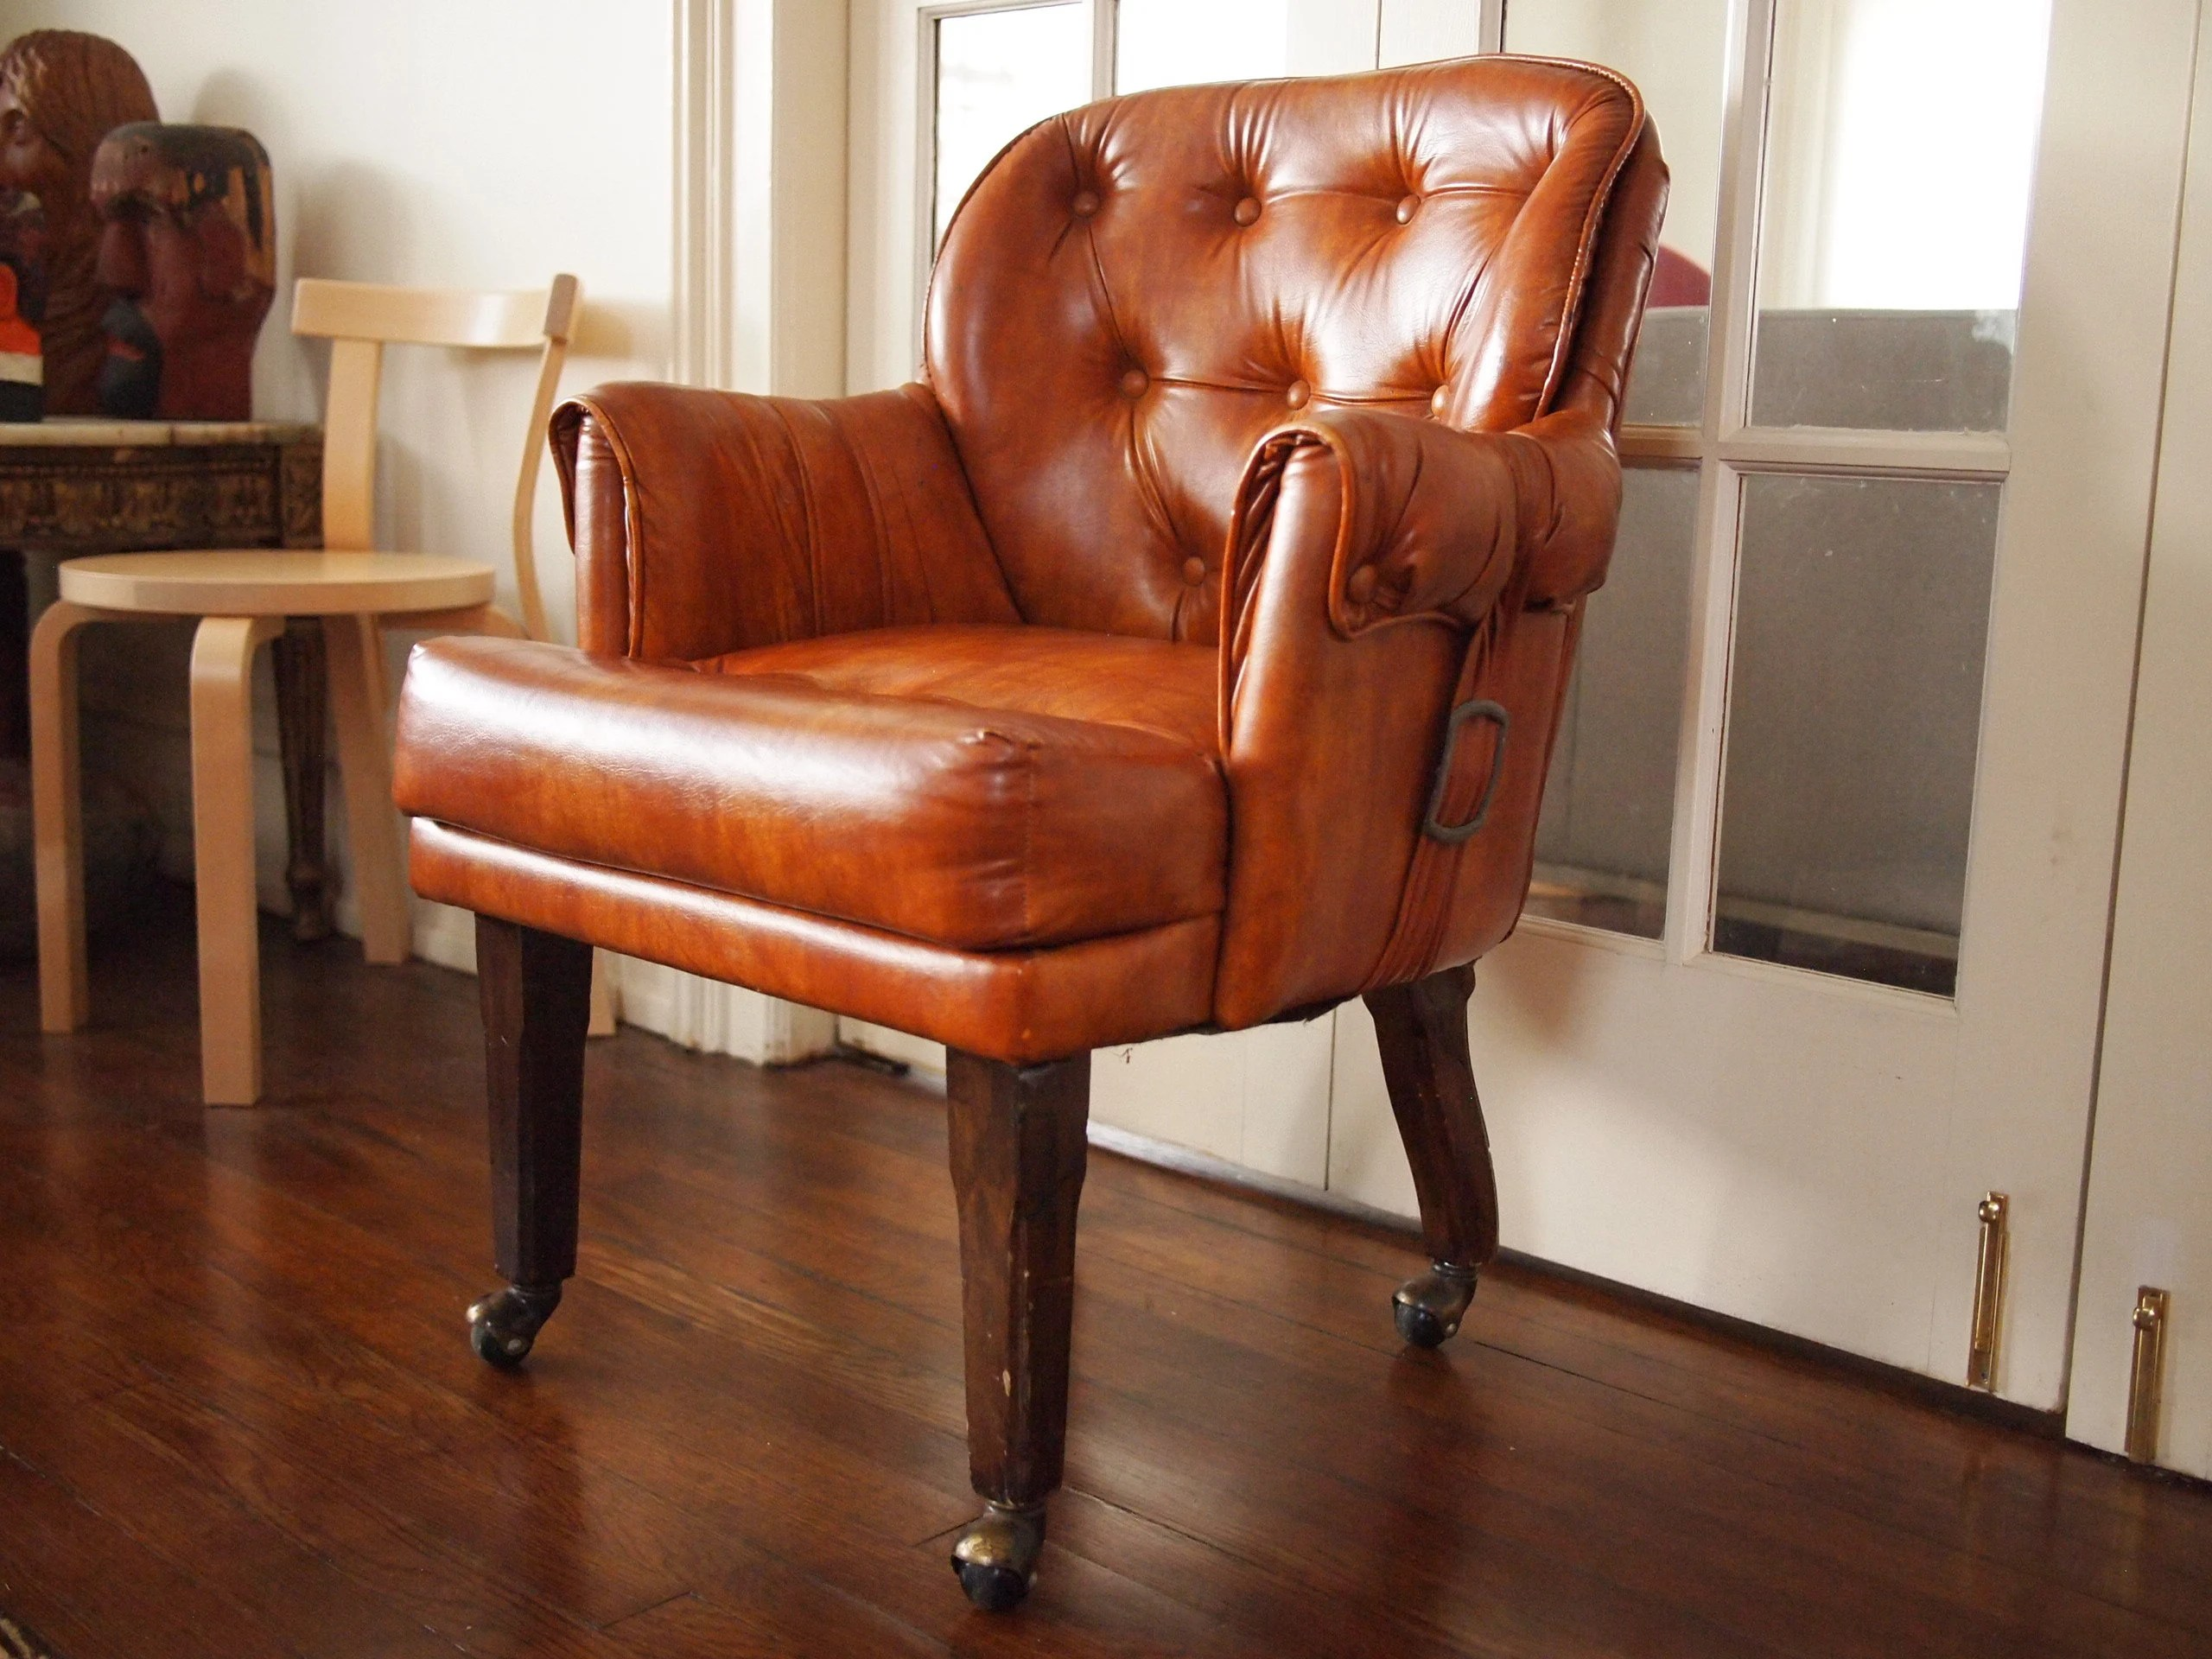 vintage arm chair washing ikea covers leather armchair etsy 2 available tufted tan faux desk library mid century modern art deco victorian danish eames knoll era